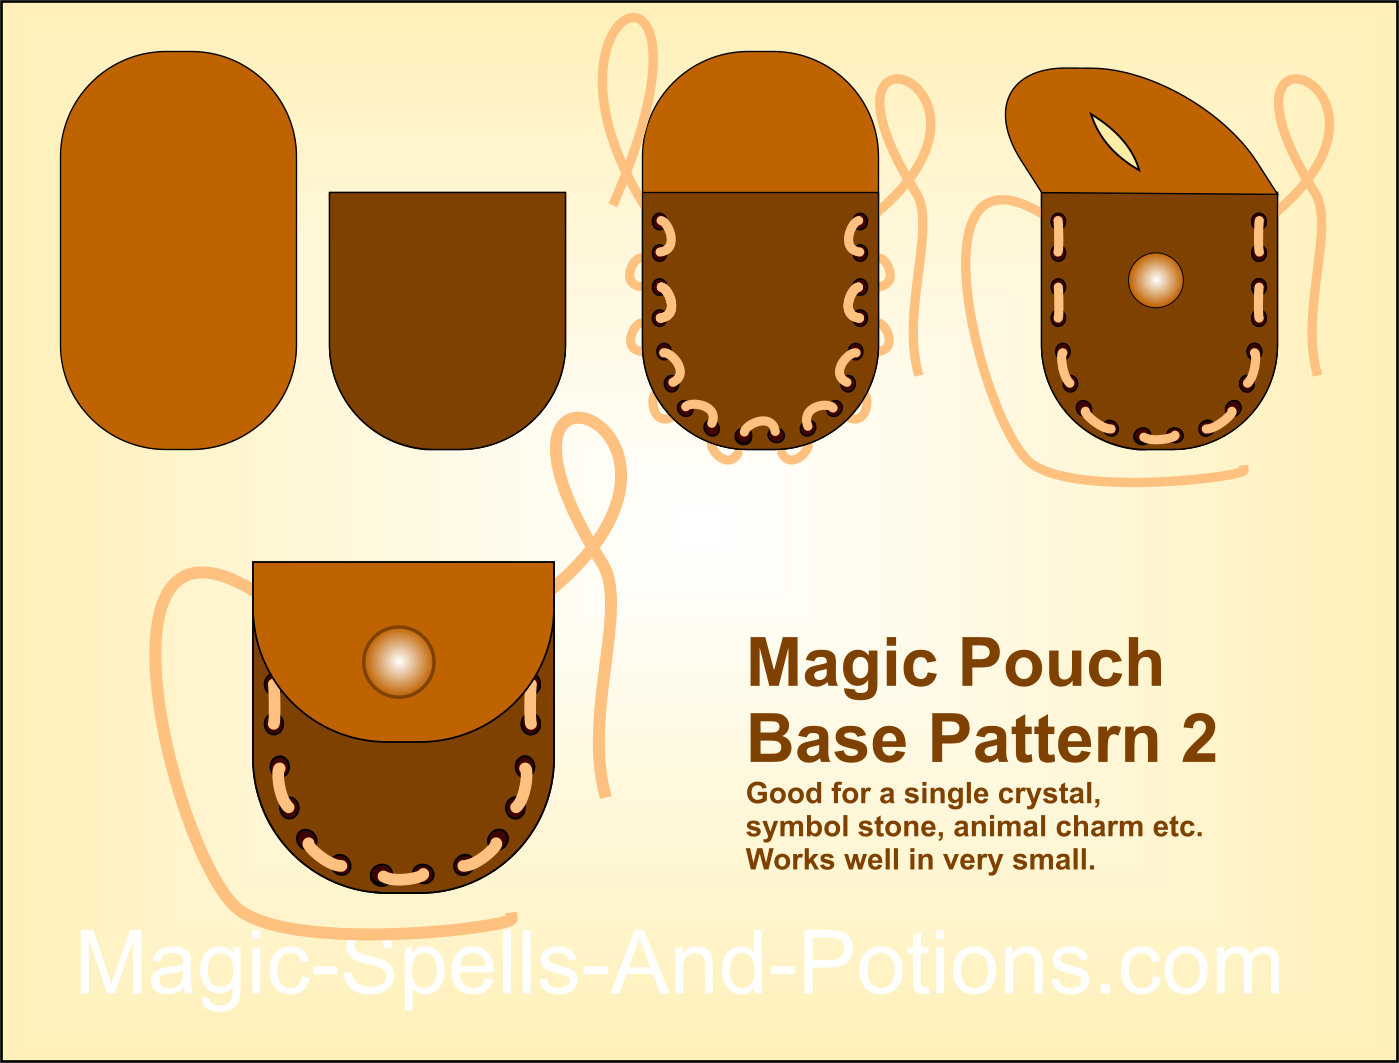 Simple two piece pattern for a magic pouch or medicine bag 2